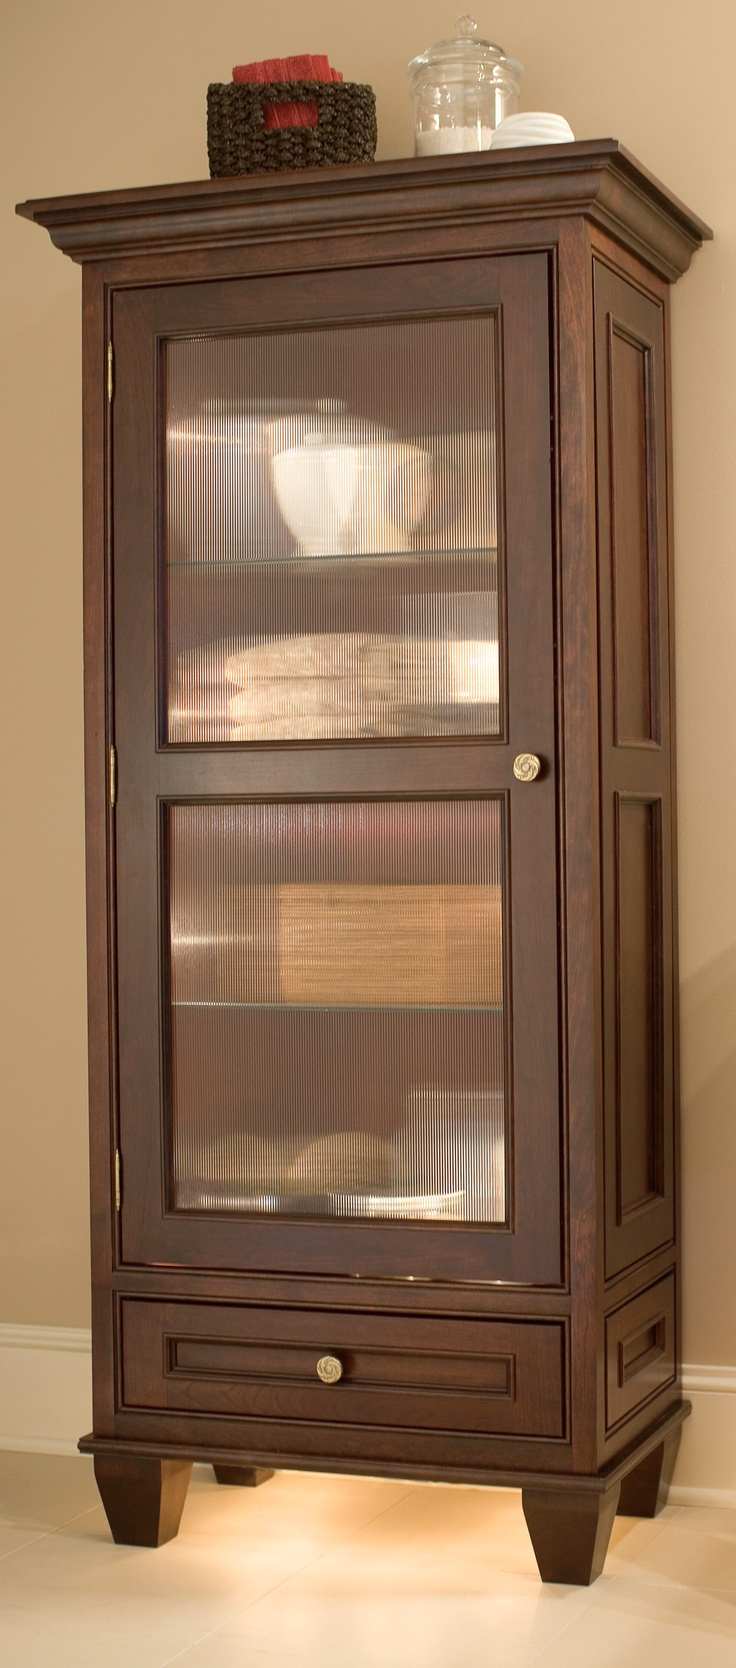 Dura Supreme Bathroom Vanity - If your bathroom is lacking linen storage a dura supreme bathroom hutch for linens maybe